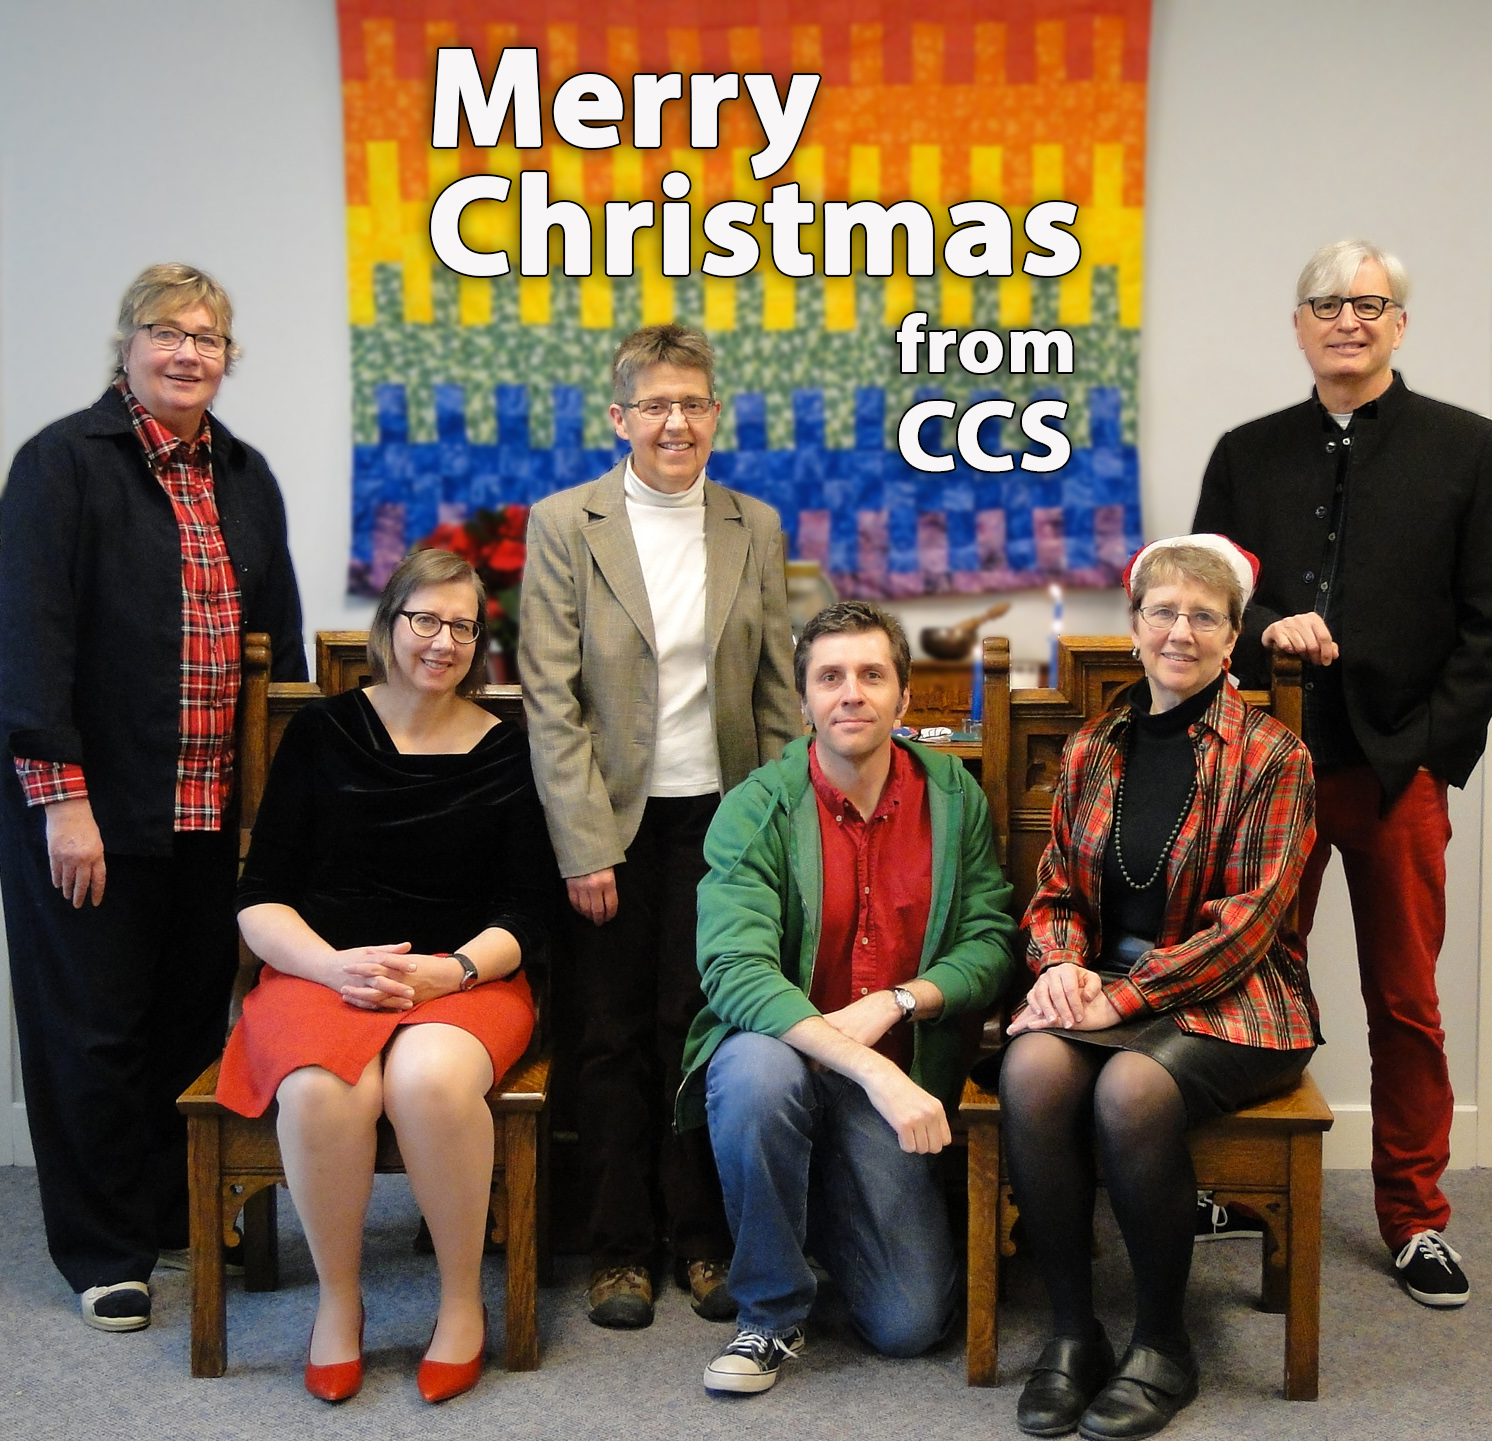 Merry Christmas from Terry, Lori, Ann, Scott, Maylanne, and Ted